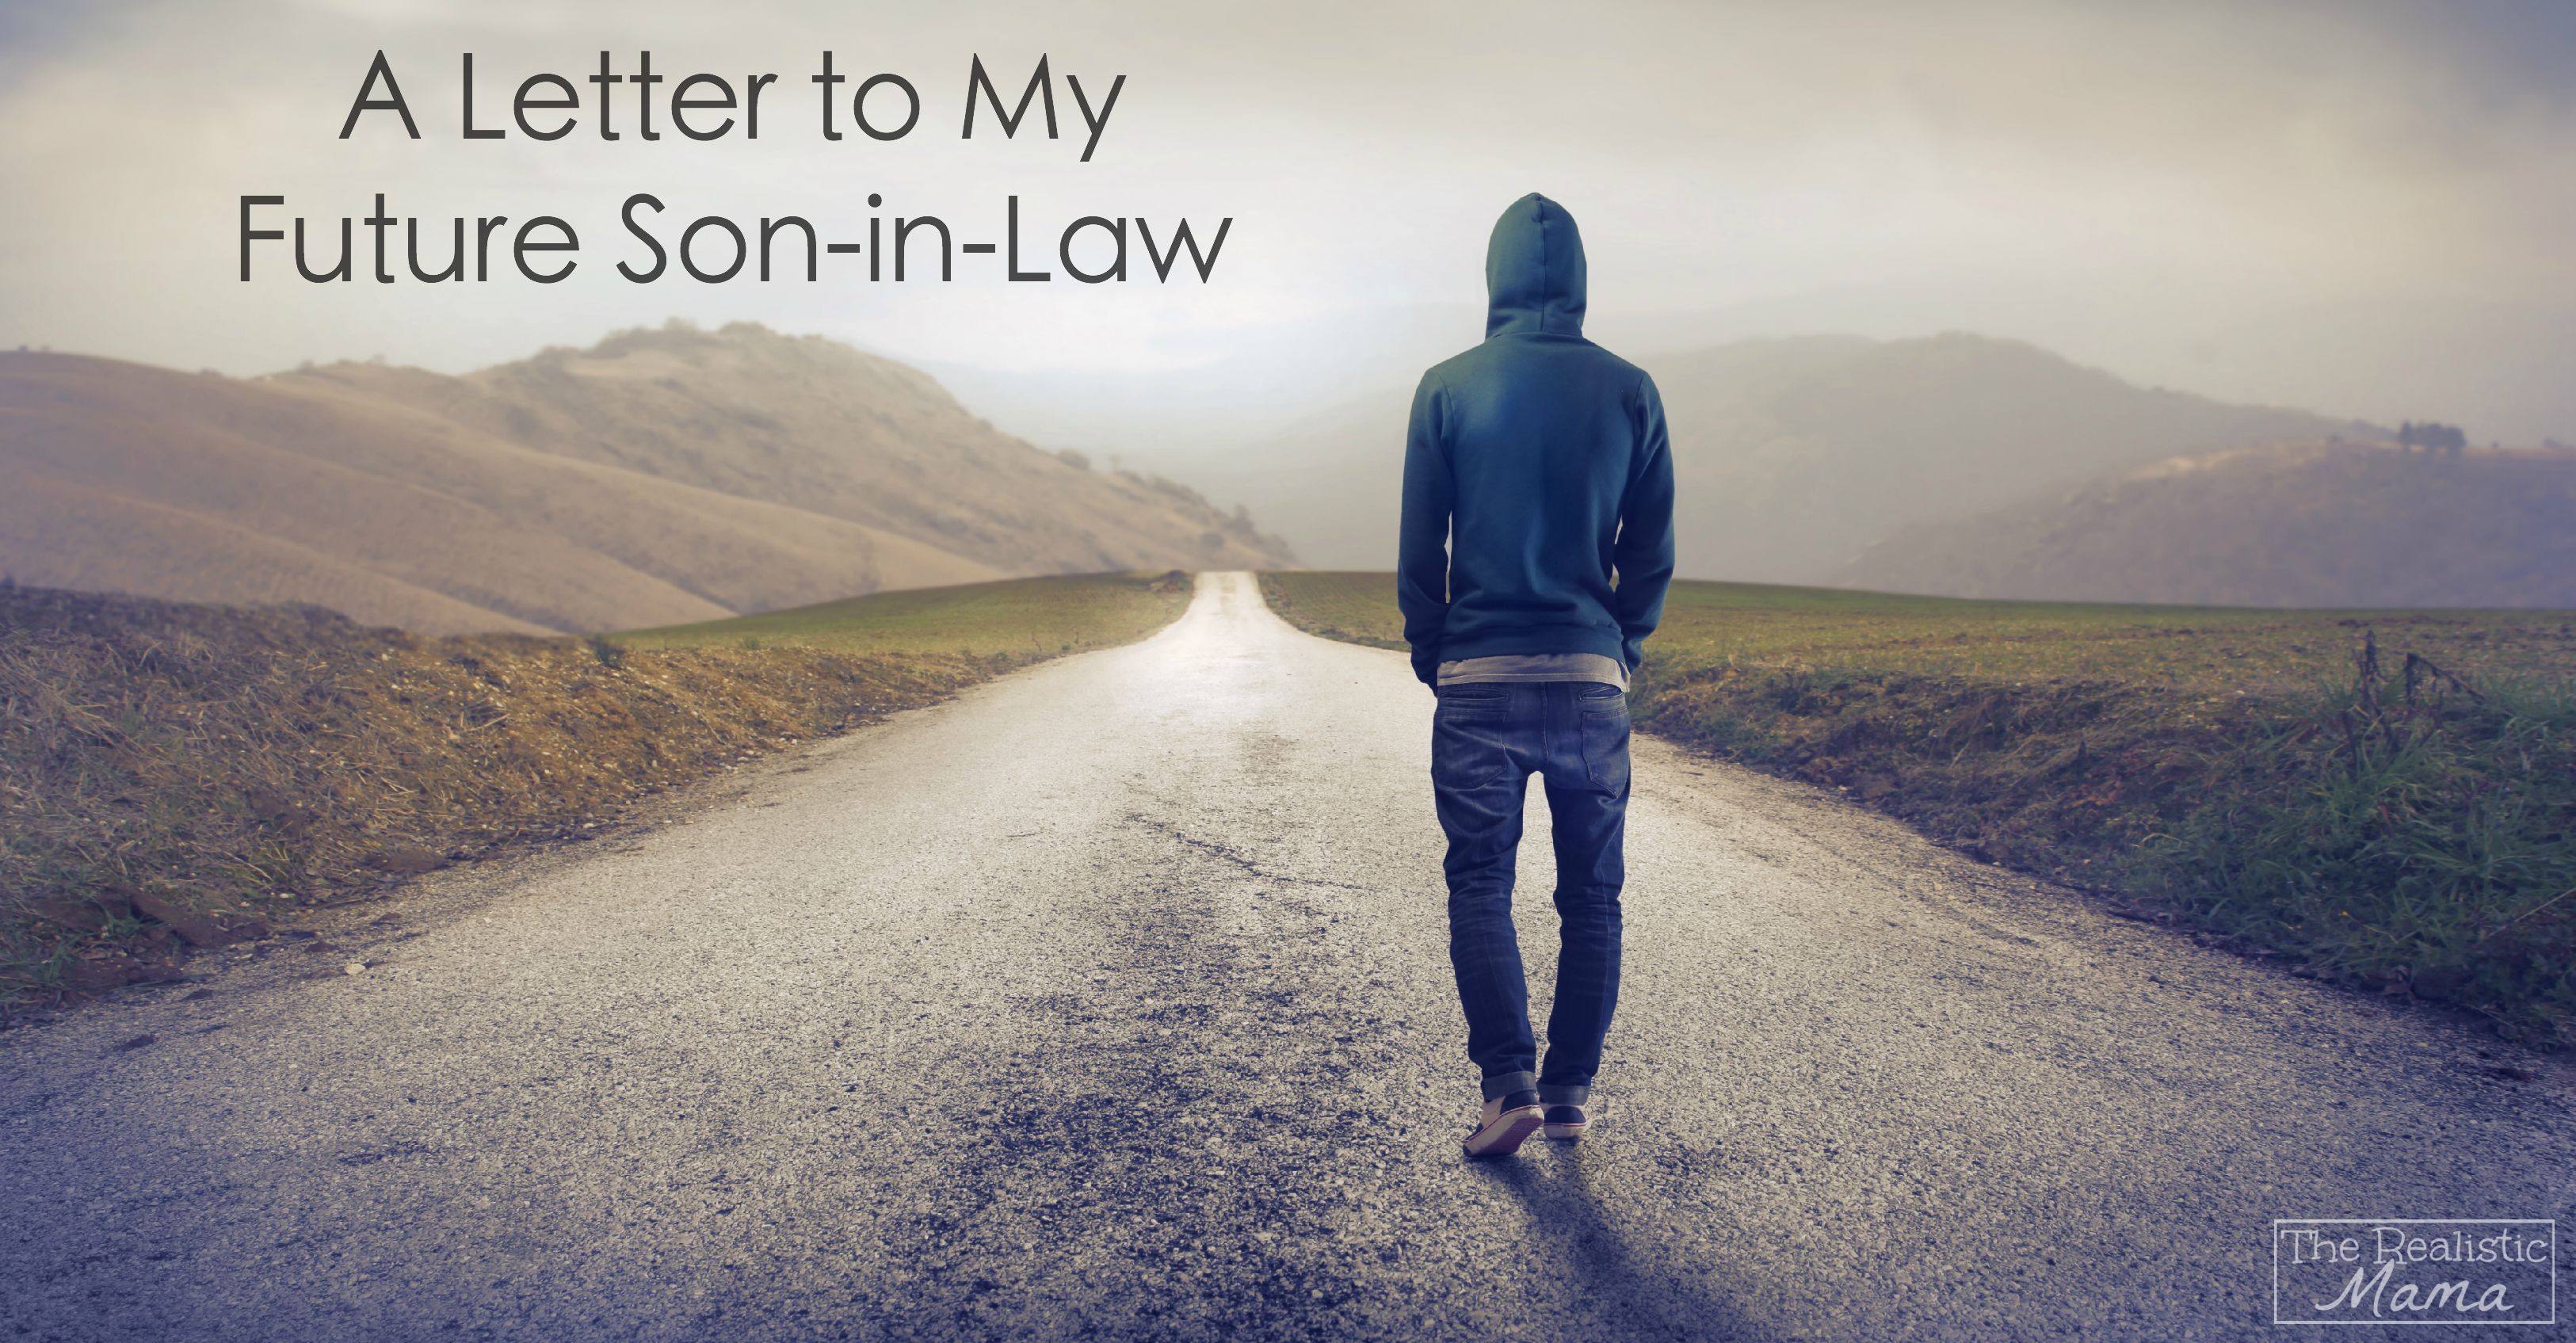 A Letter to My Future Son-in-Law